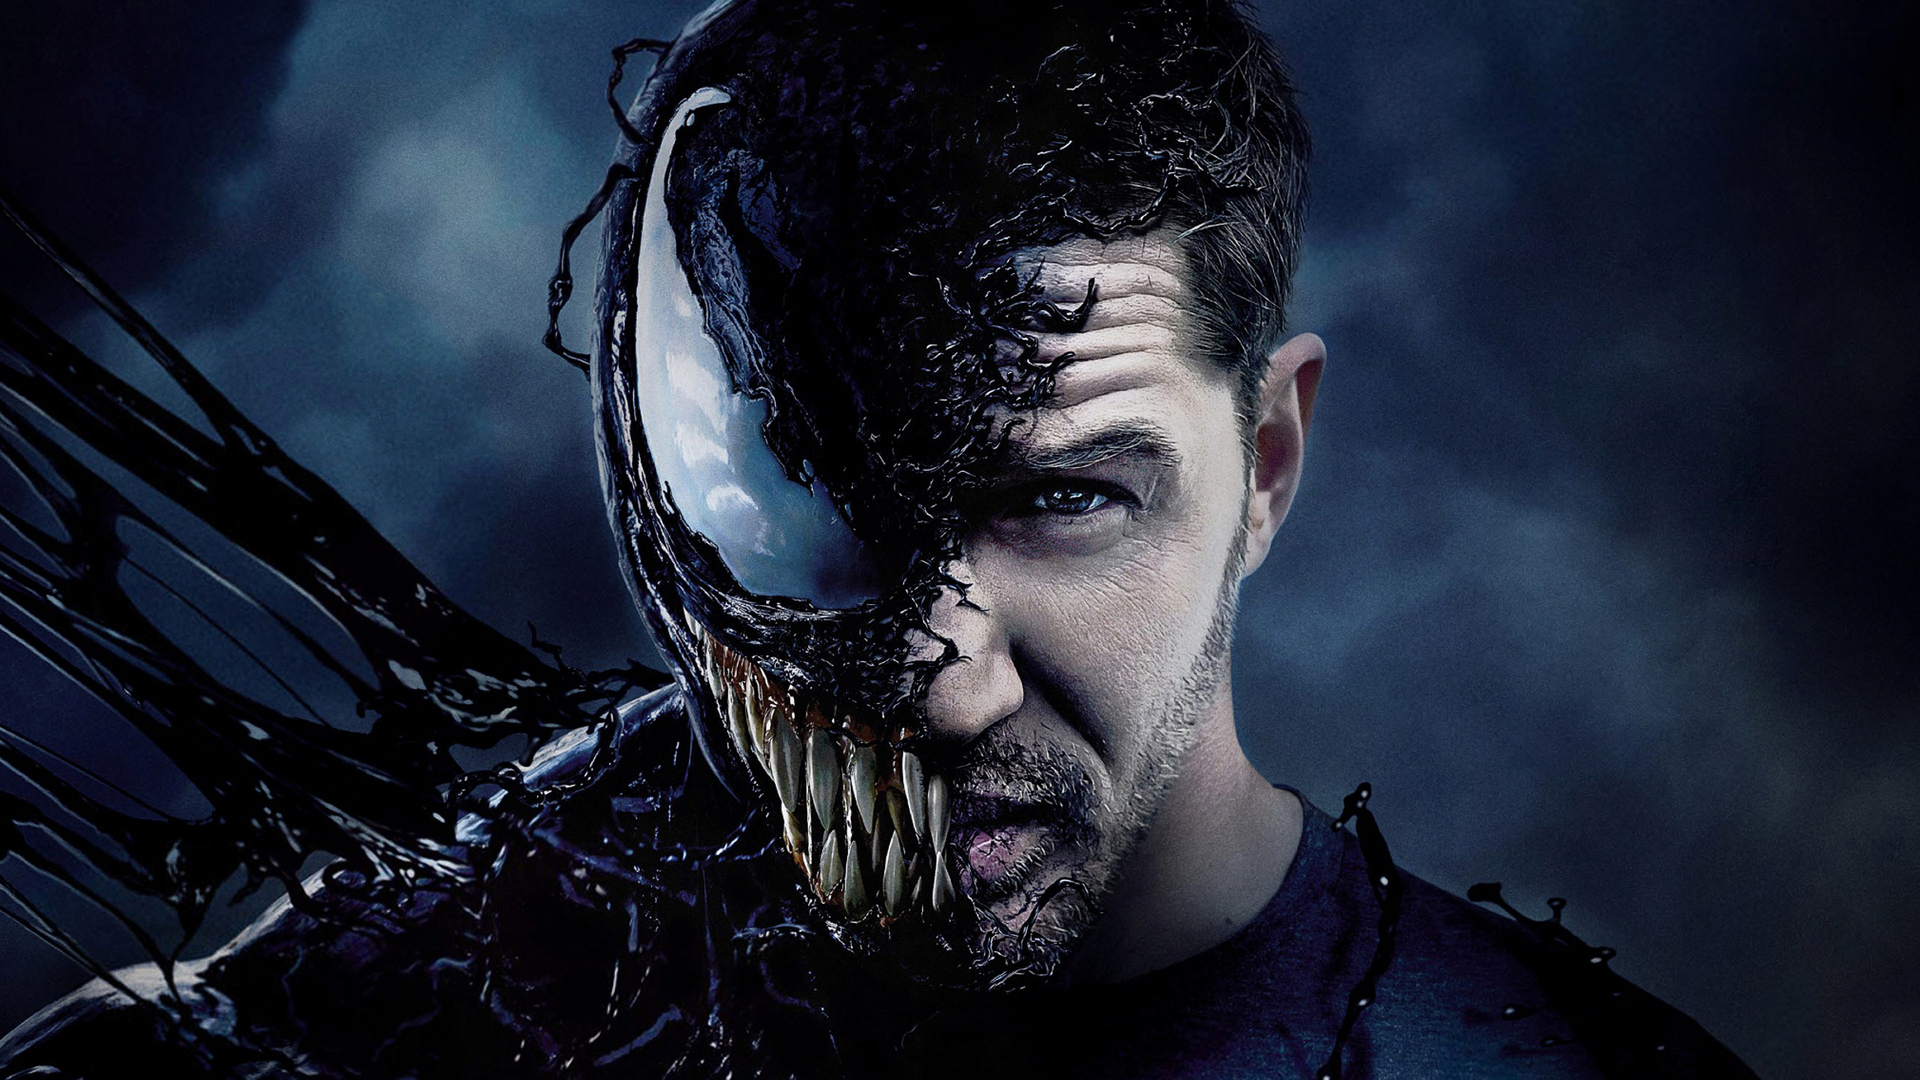 1920x1080 Venom Tom Hardy 4k Laptop Full HD 1080P HD 4k ...